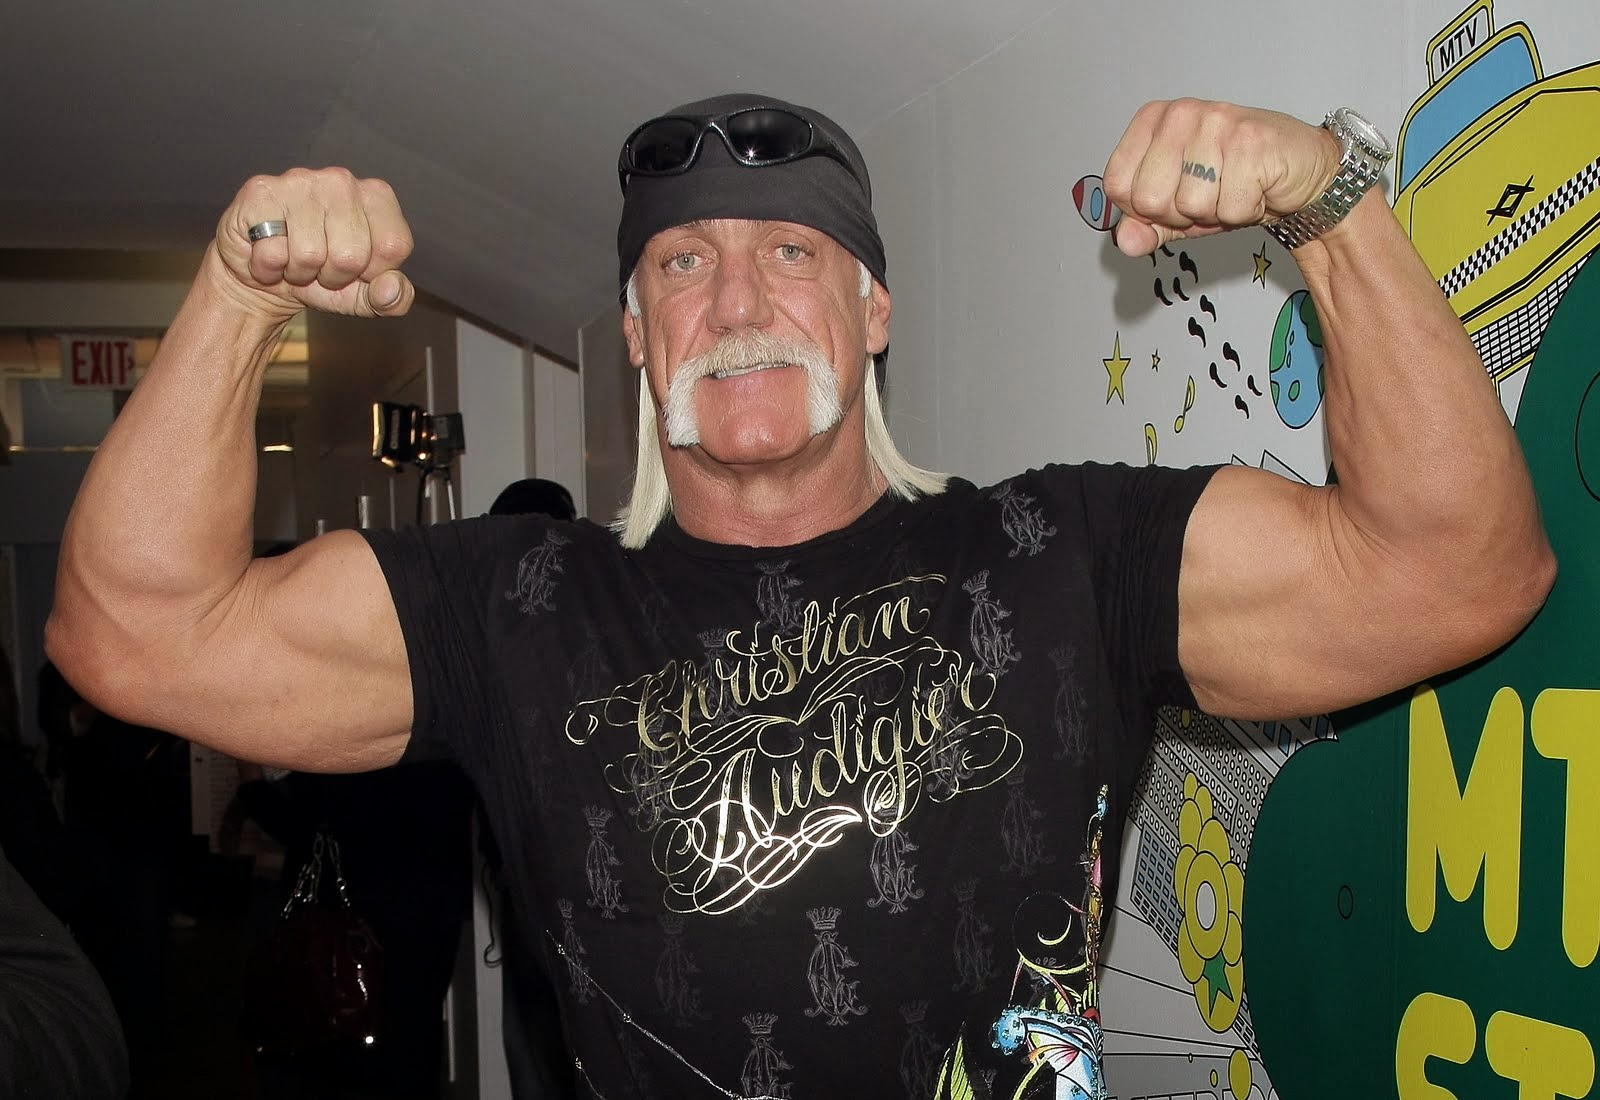 Hogan Hulk Hulk Hogan Hd Wallpapers Free Download Wwe Superstars Hd